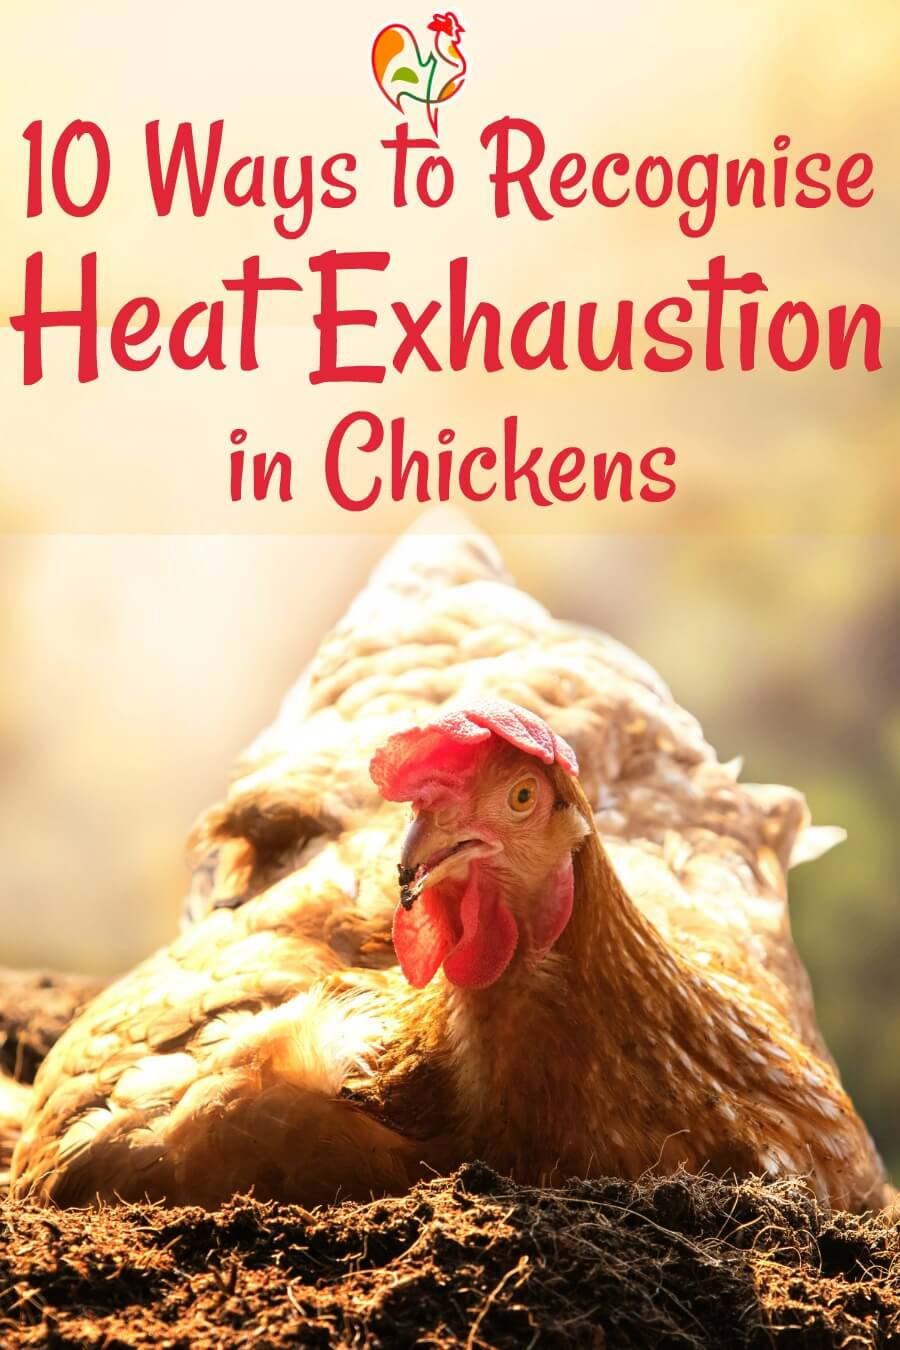 How to spot heatstroke in chickens - Pin for later.